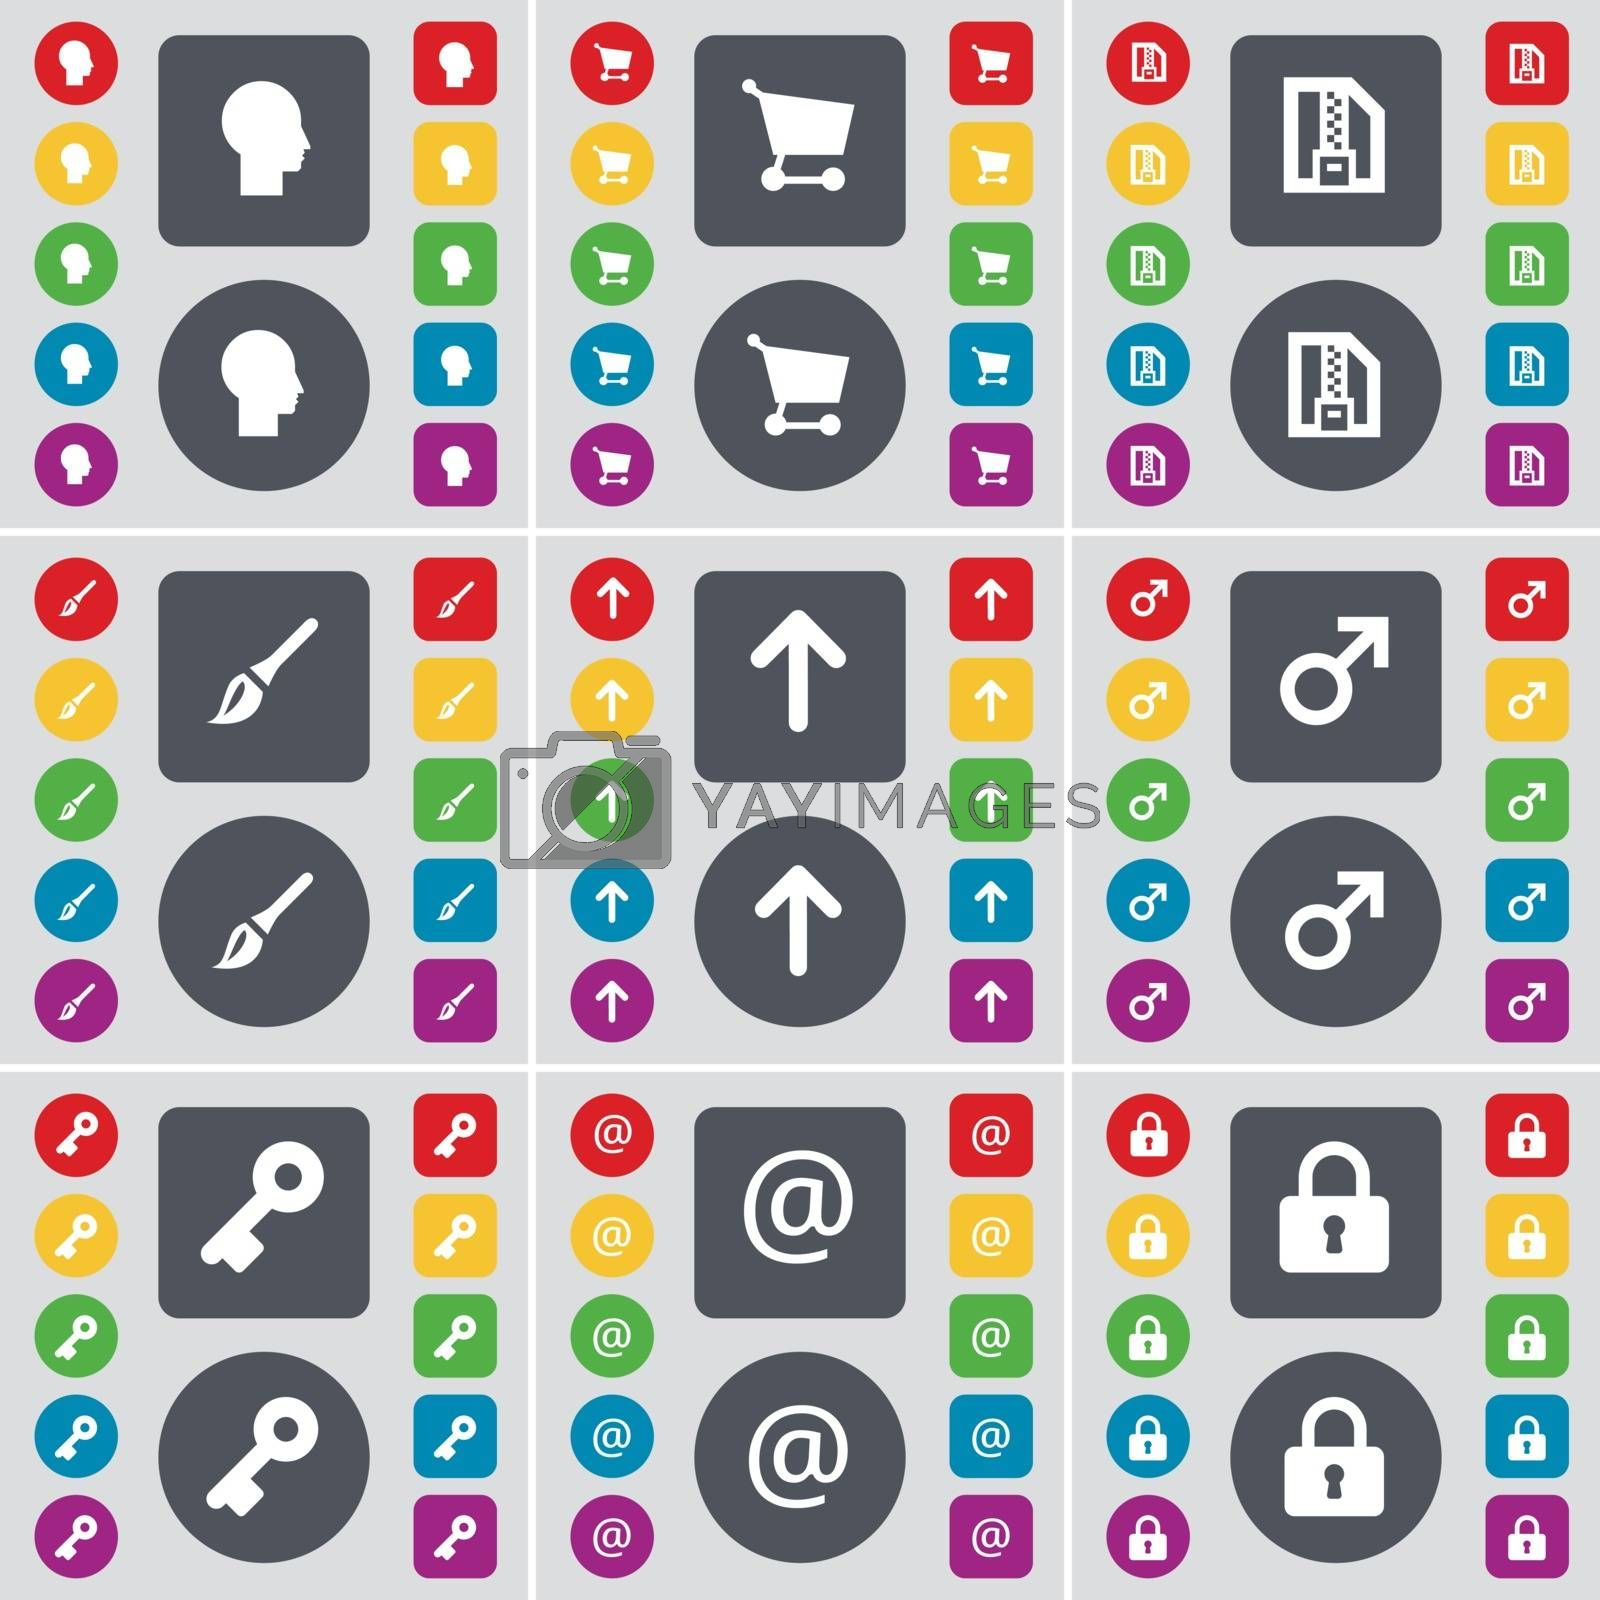 Royalty free image of Silhouette, Shopping cart, ZIP file, Brush, Arrow up, Mars symbol, Key, Mail, Lock icon symbol. A large set of flat, colored buttons for your design. Vector by serhii_lohvyniuk